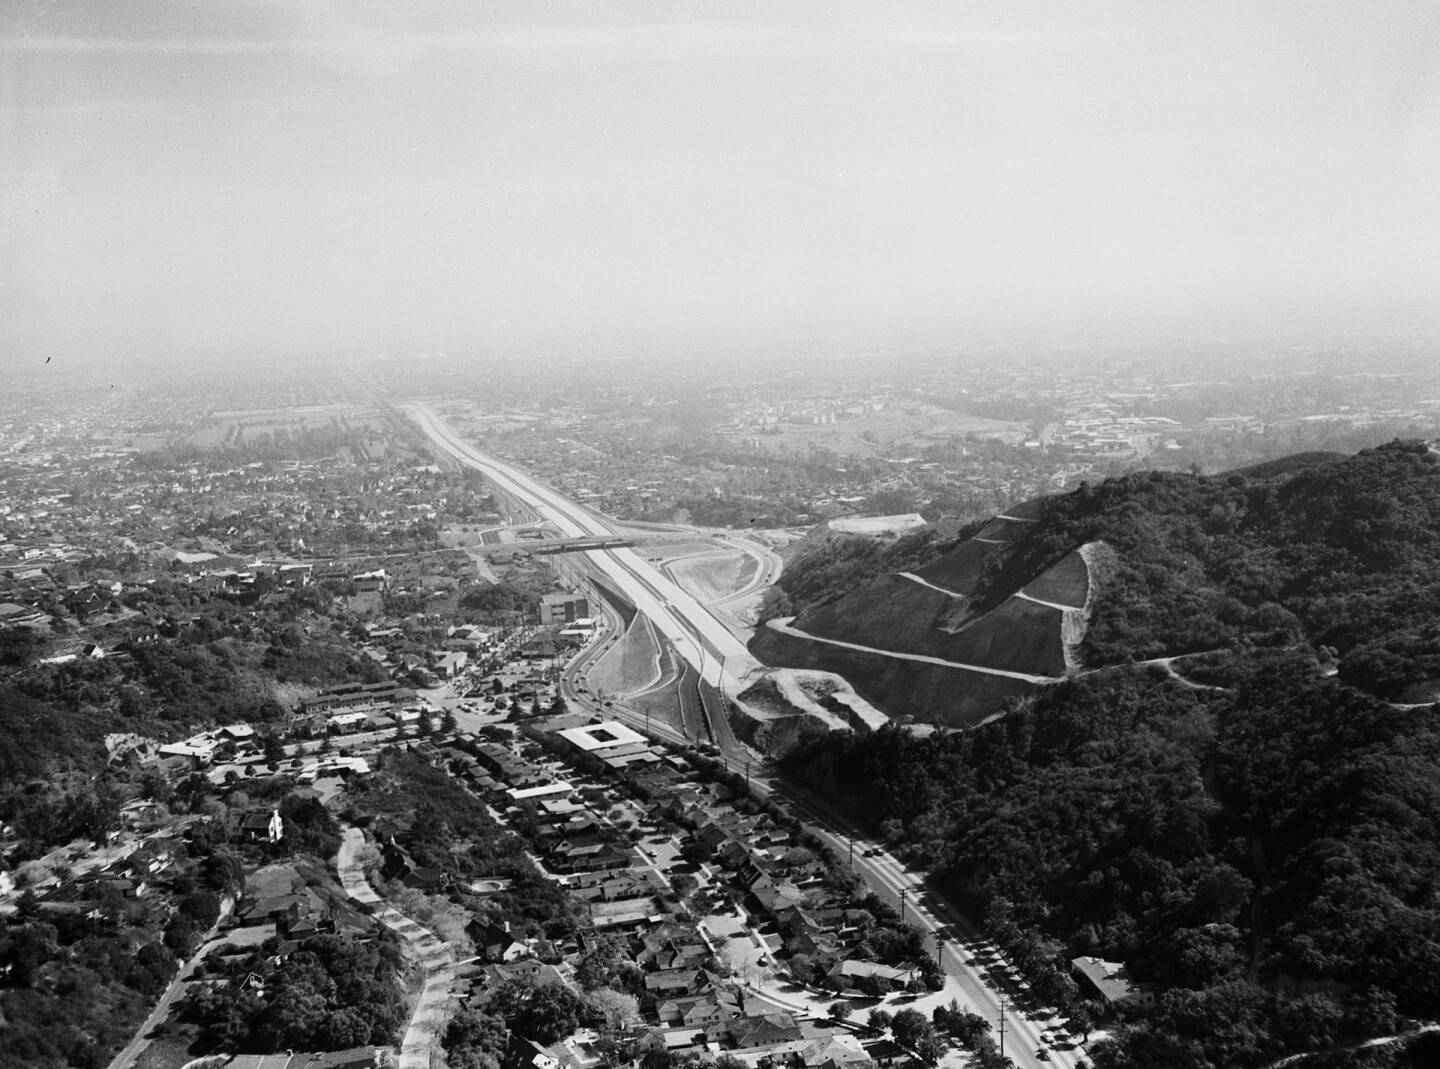 1957 aerial view of the San Diego (I-405) Freeway under construction through Sepulveda Canyon, courtesy of the Los Angeles Examiner Collection, USC Libraries.